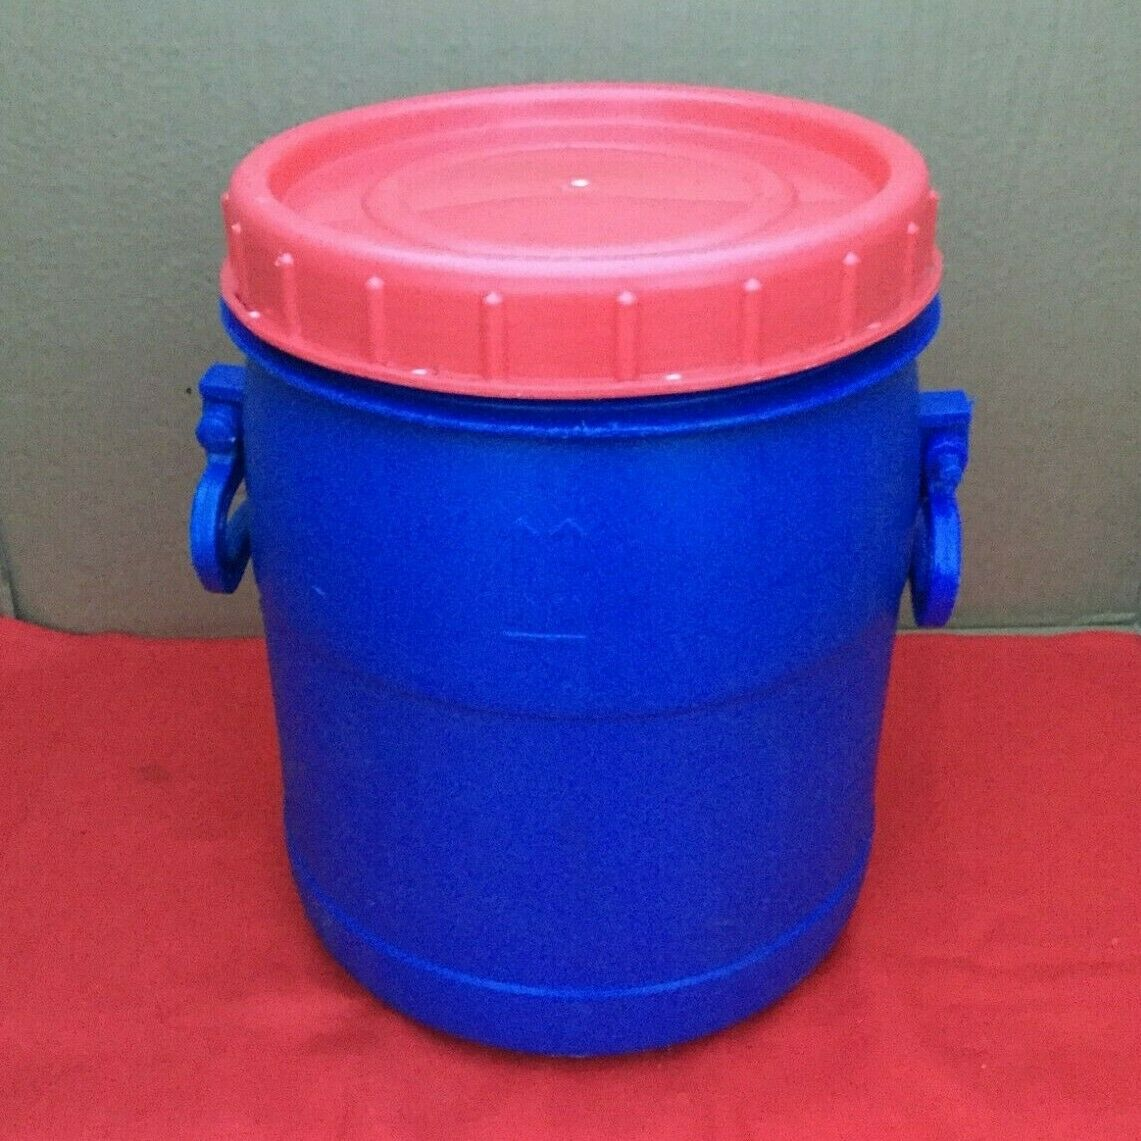 20 litre Blue Plastic Barrel Screw Top Lid Recycled Washed Food Grade BPA Free